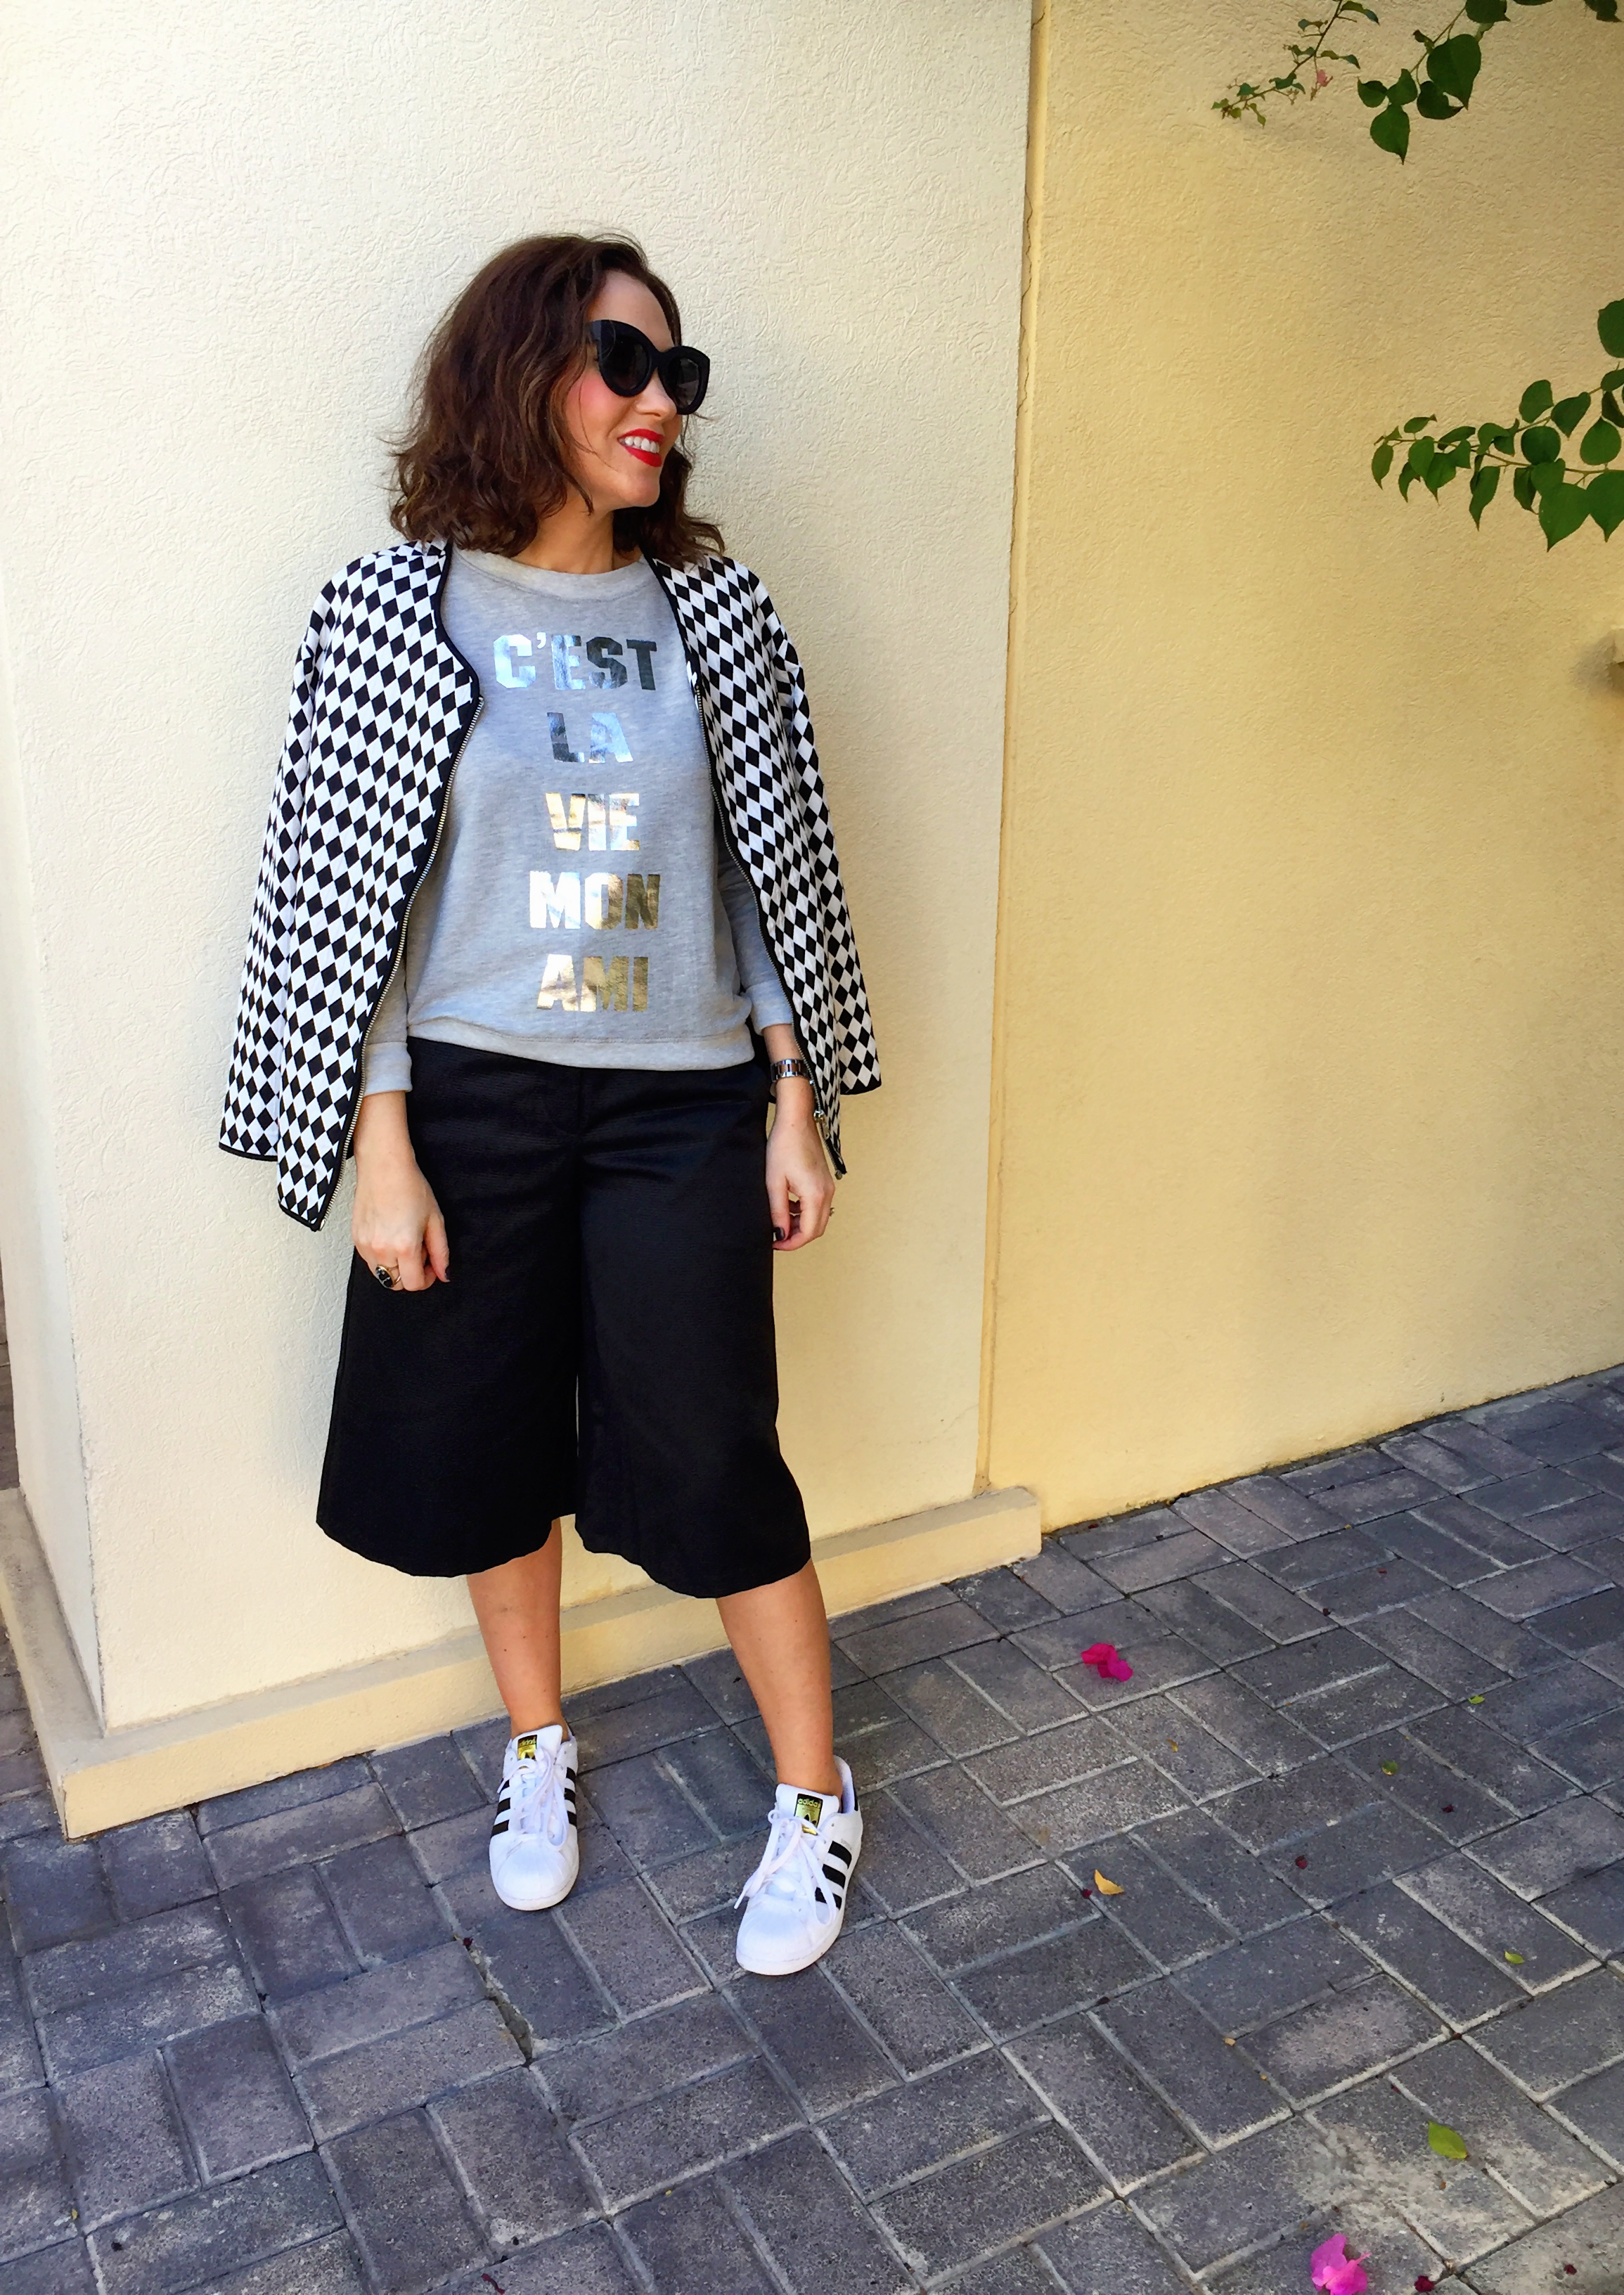 culottes-asos-black-white-monochrome-blog-post-blogger-gingham-and-sparkle-trend-fashion-style-dubai-ireland-irish-shoe-boots-fringe-stripes-bell-sleeves-zara-h&m-adidas-trainers-runners-3-styles-grey-jumper-elephant-print-blouse-shoe-boots-jacket-quay-australia-sunglasses